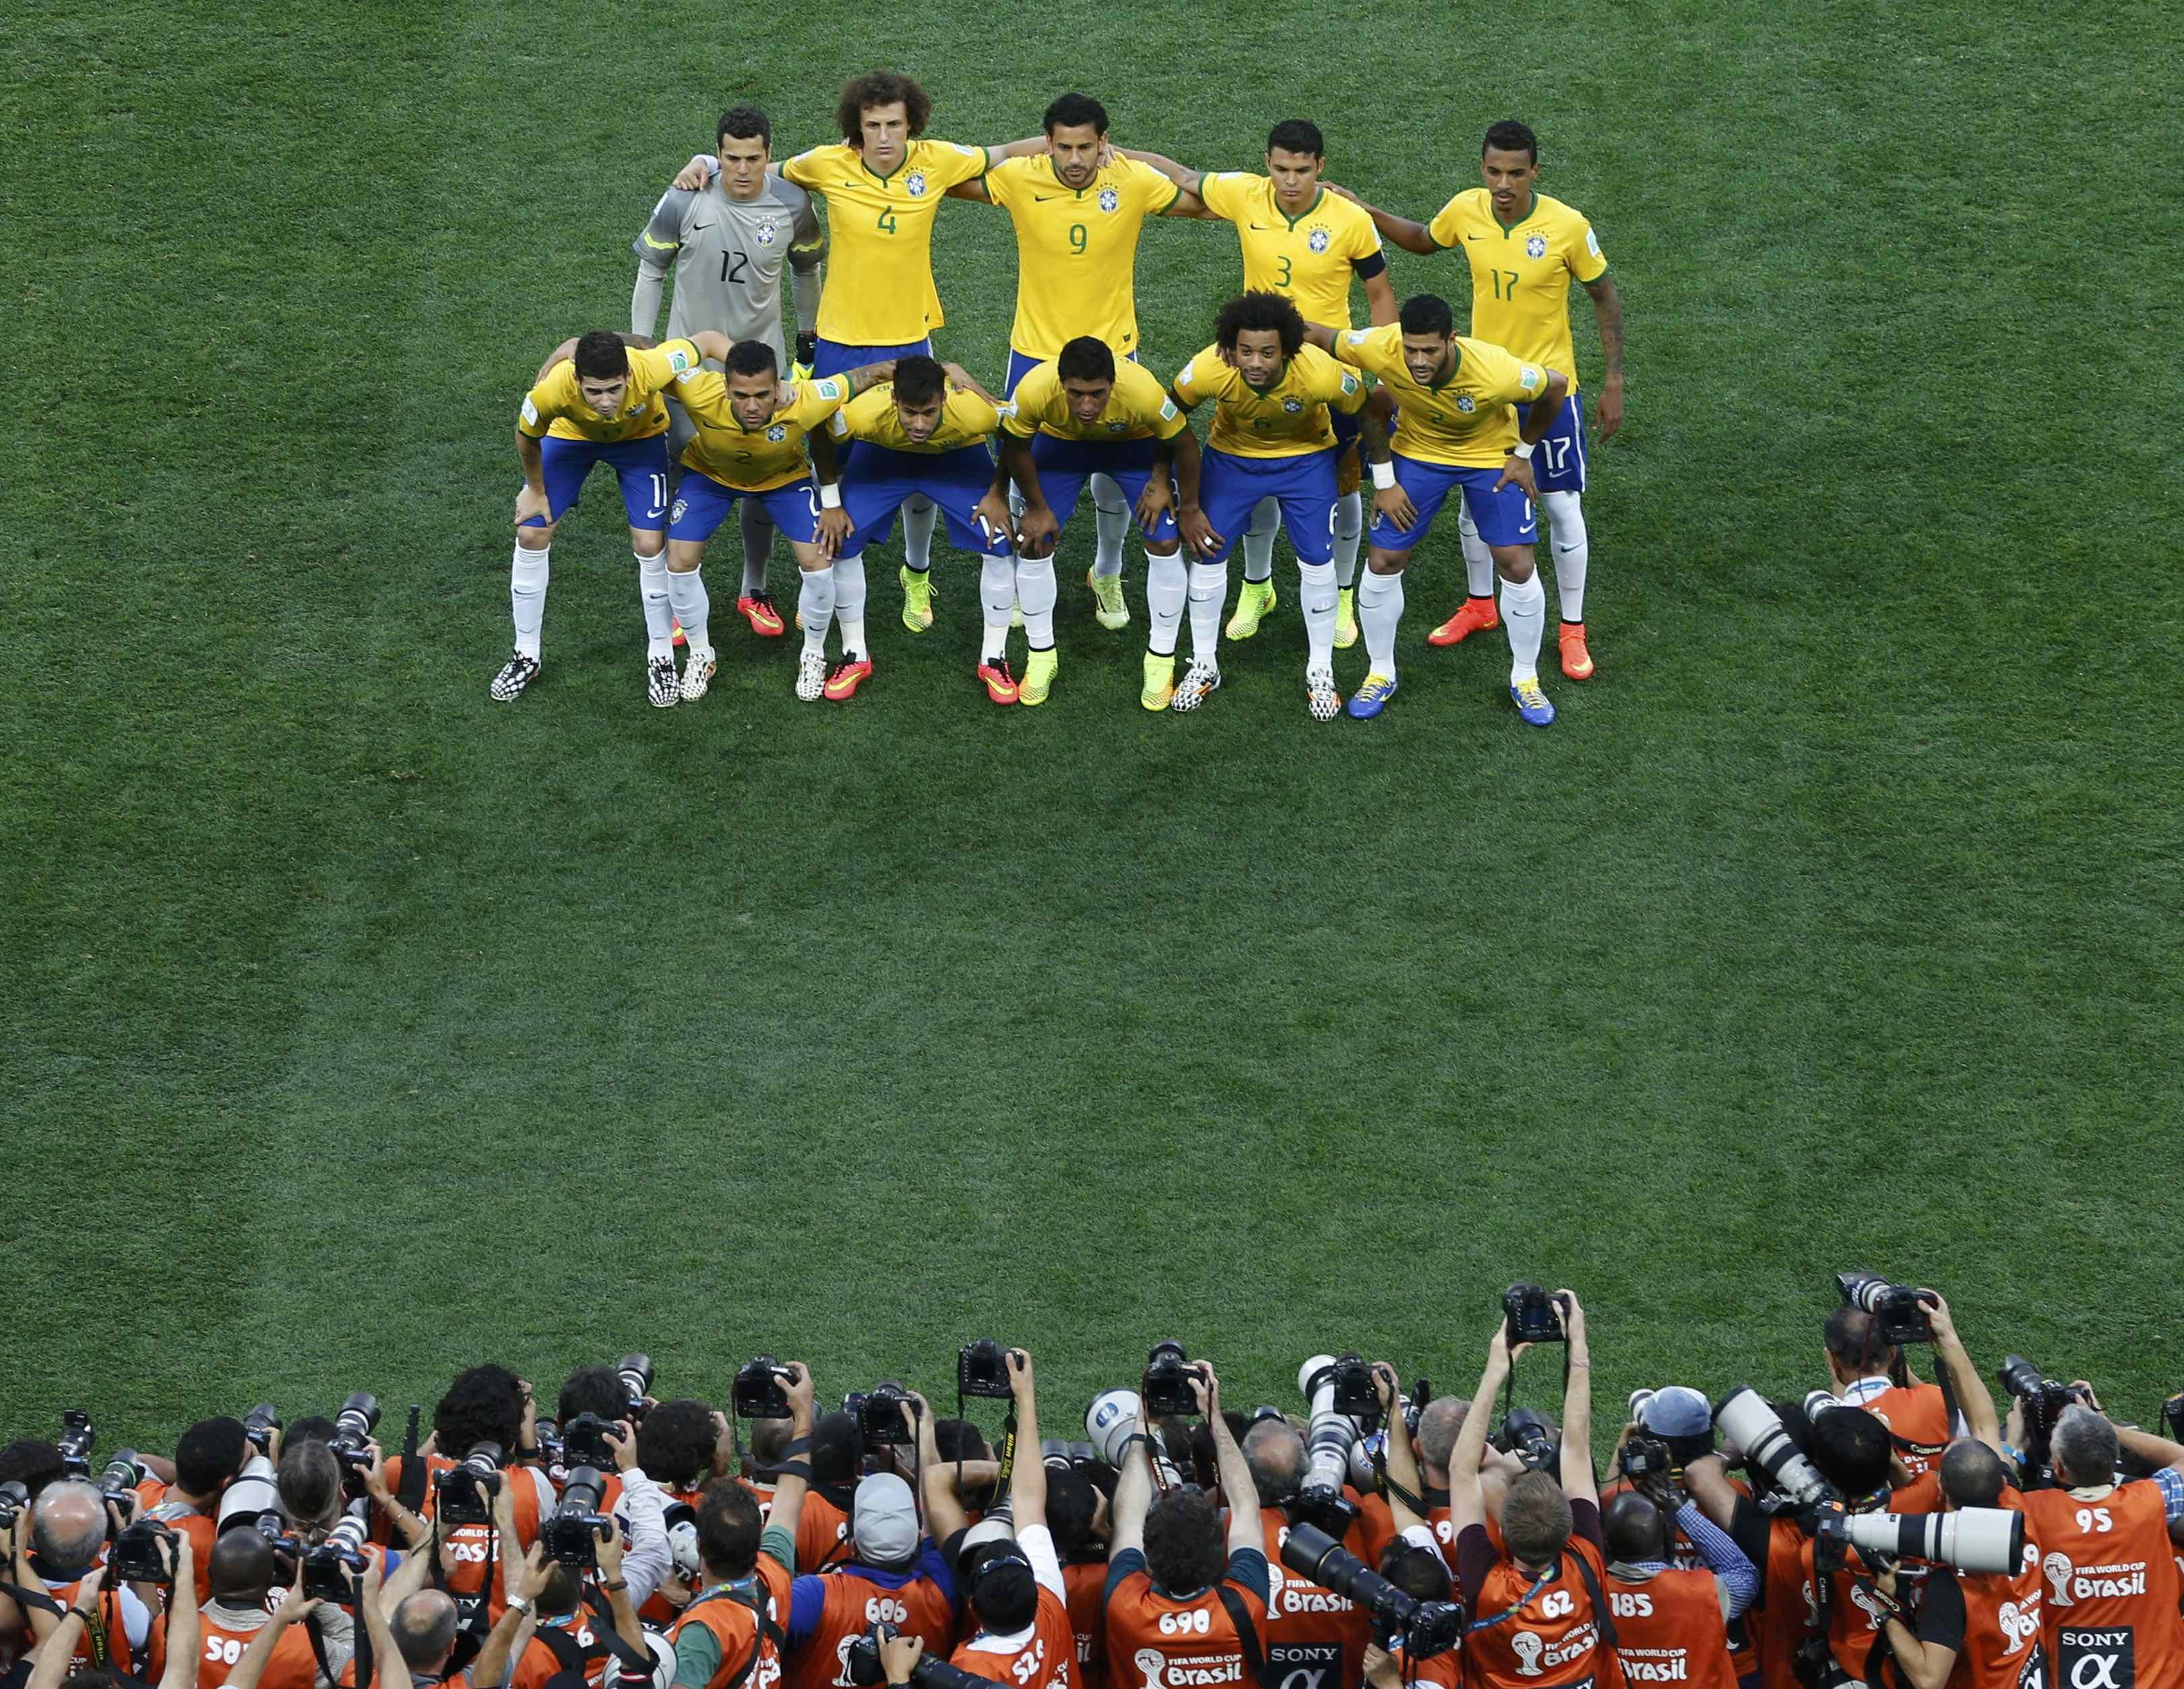 Brazil's national soccer players pose for a team photo before their 2014 World Cup opening match against Croatia at the Corinthians arena in Sao Paulo on June 12, 2014.